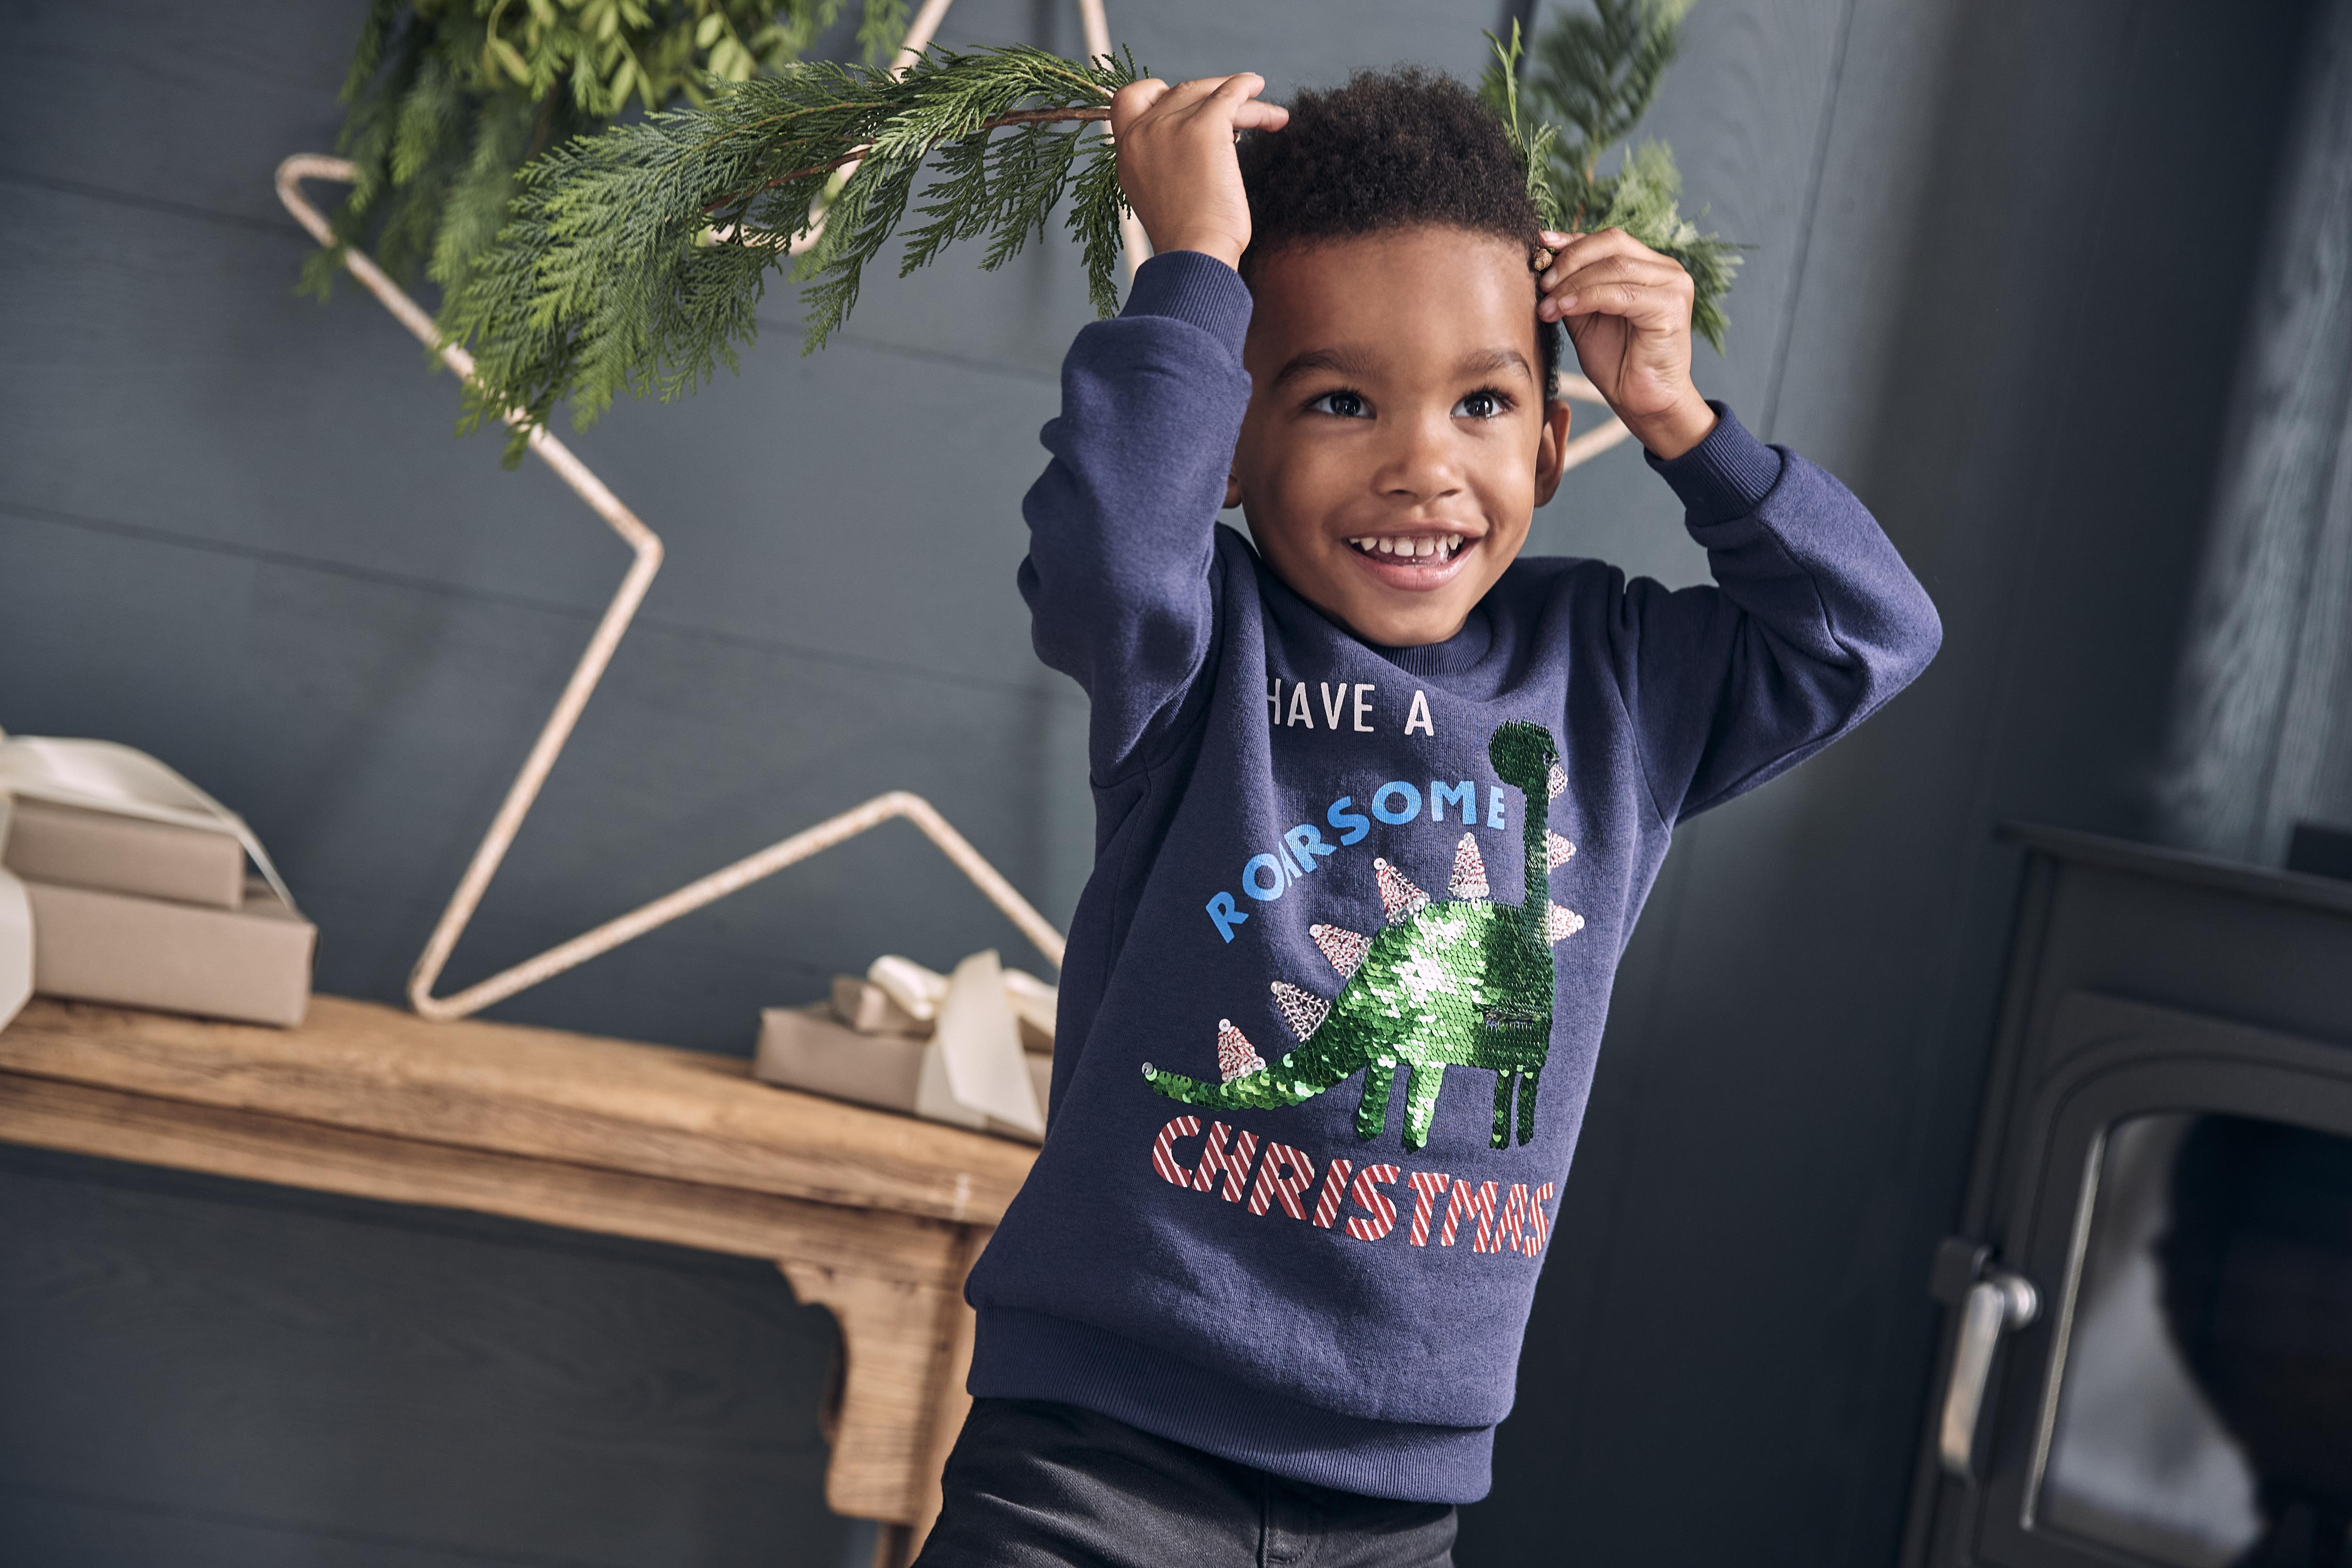 Here's how you can tempt little ones into joining in with Christmas jumper day